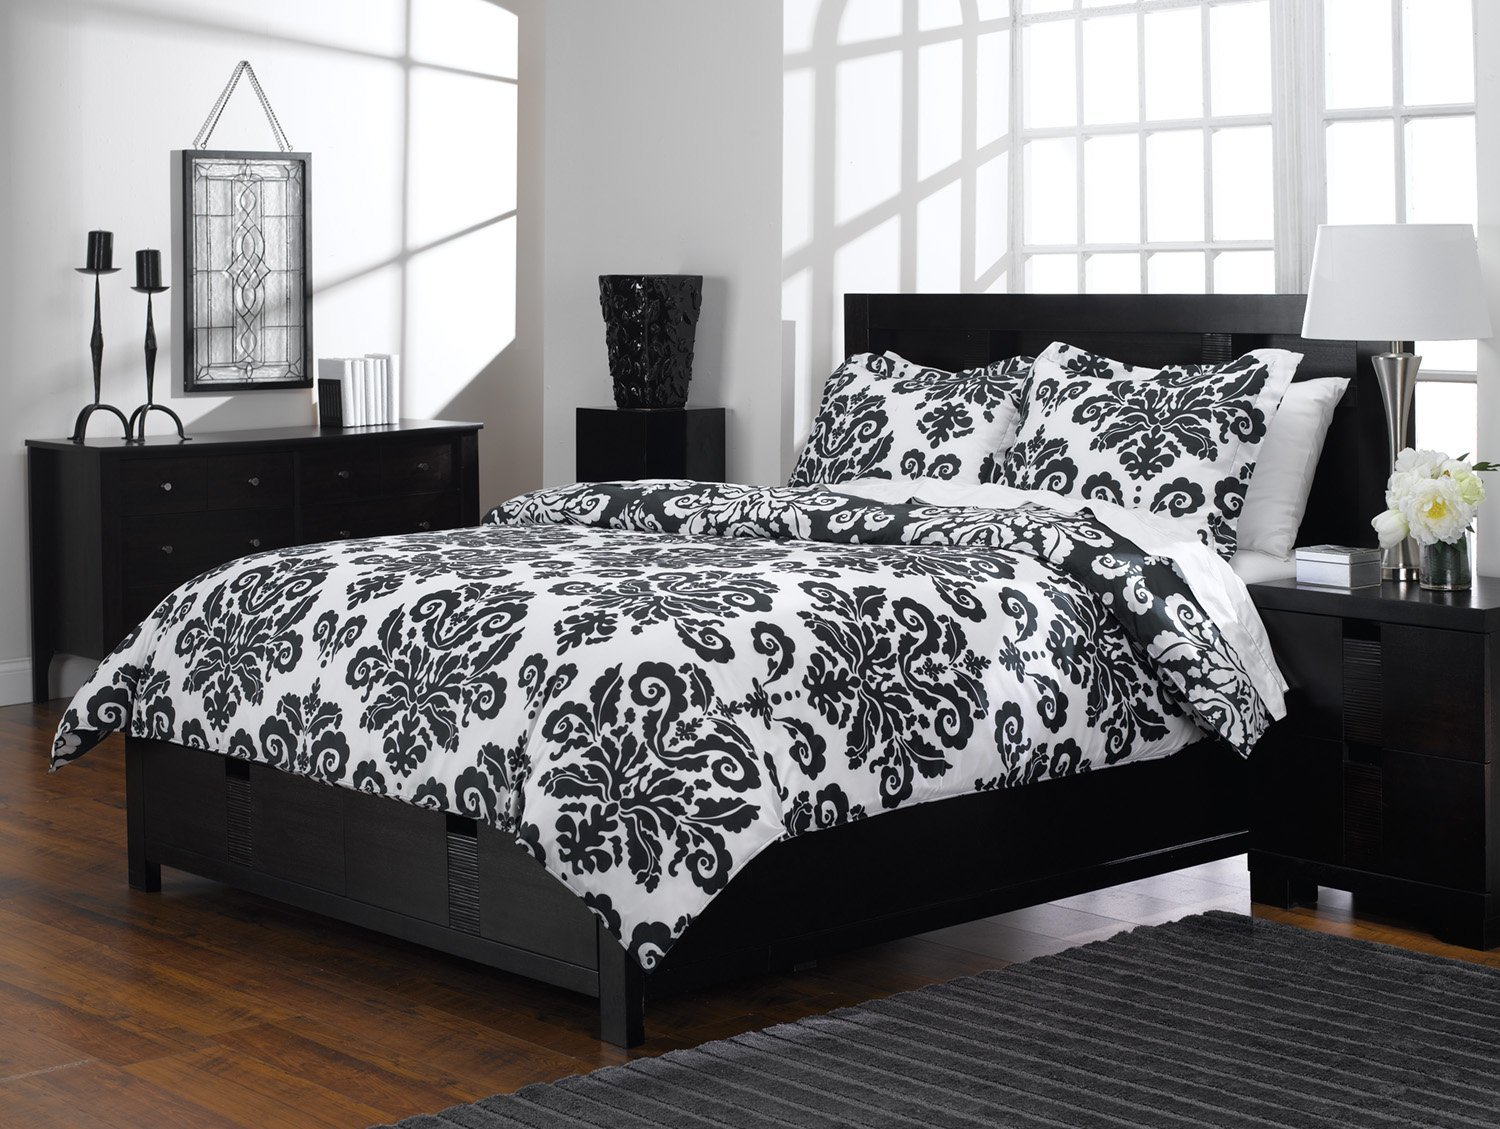 Image of: Black And White Duvet Cover Queen